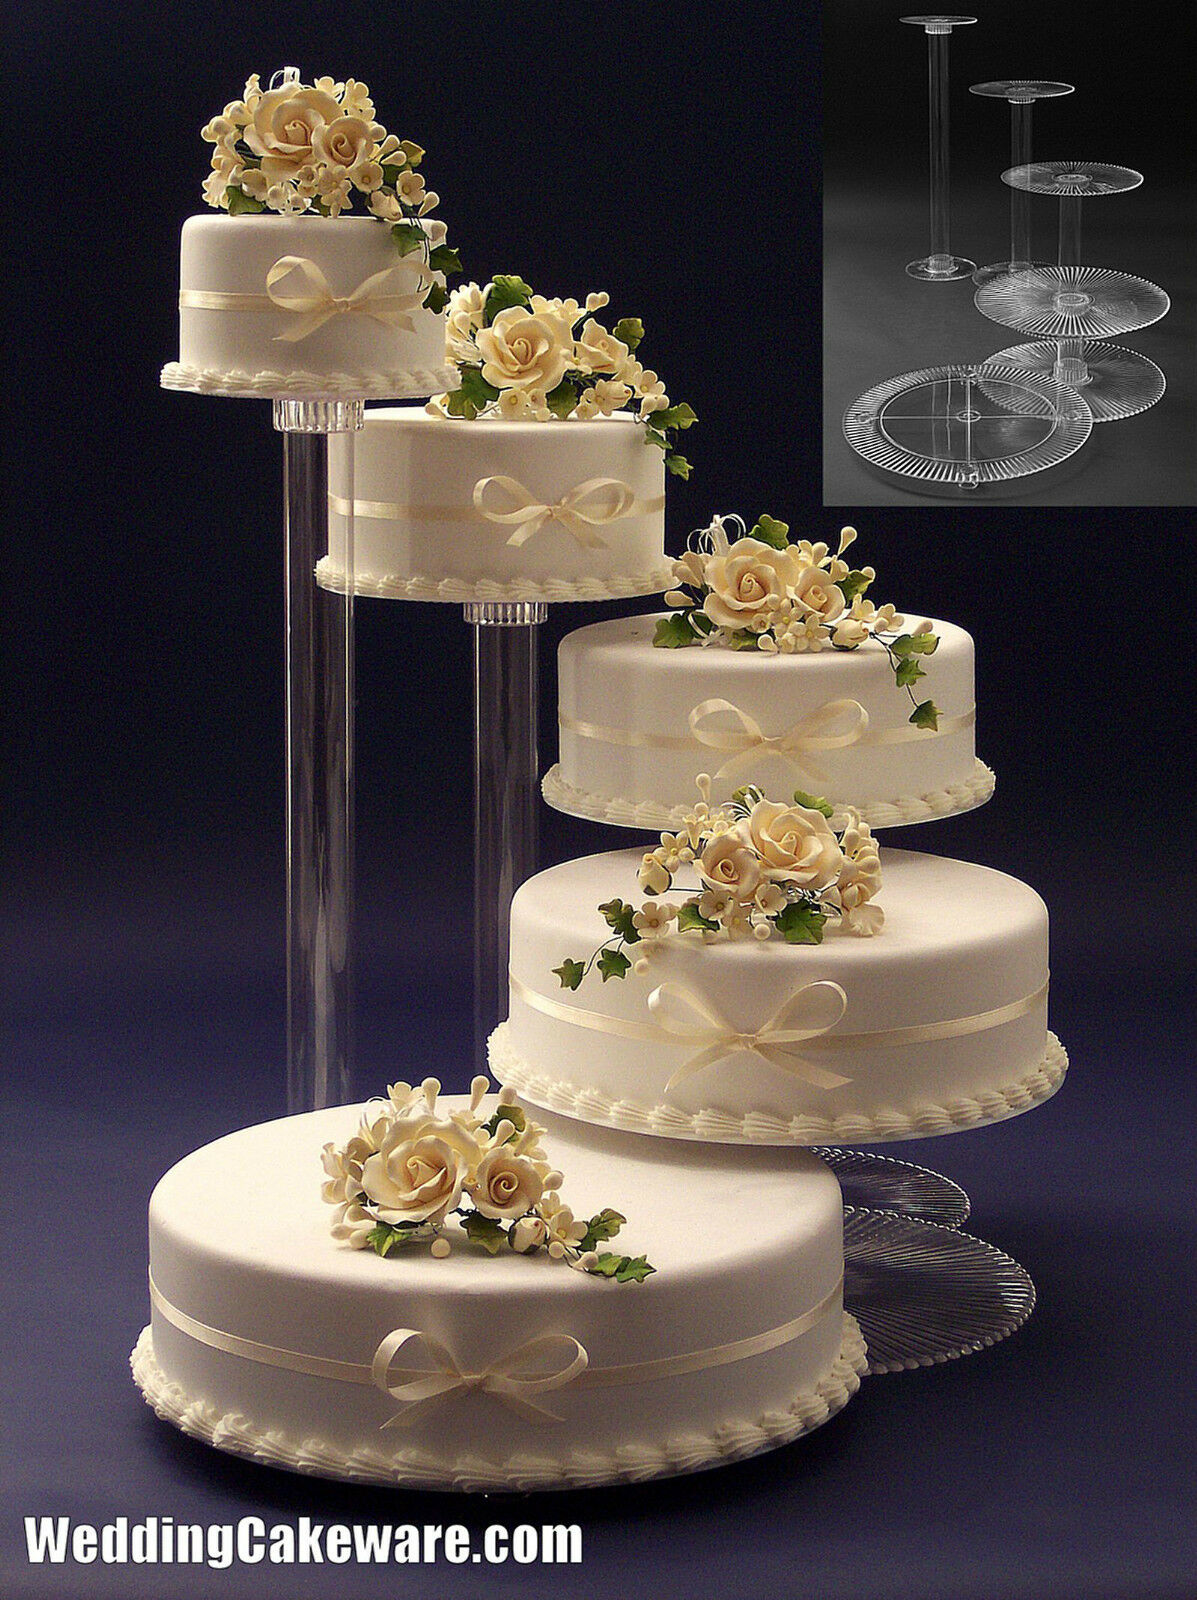 cake stand wedding  bling wedding cake stand  cupcake base  dessert serving plate  centerpiece